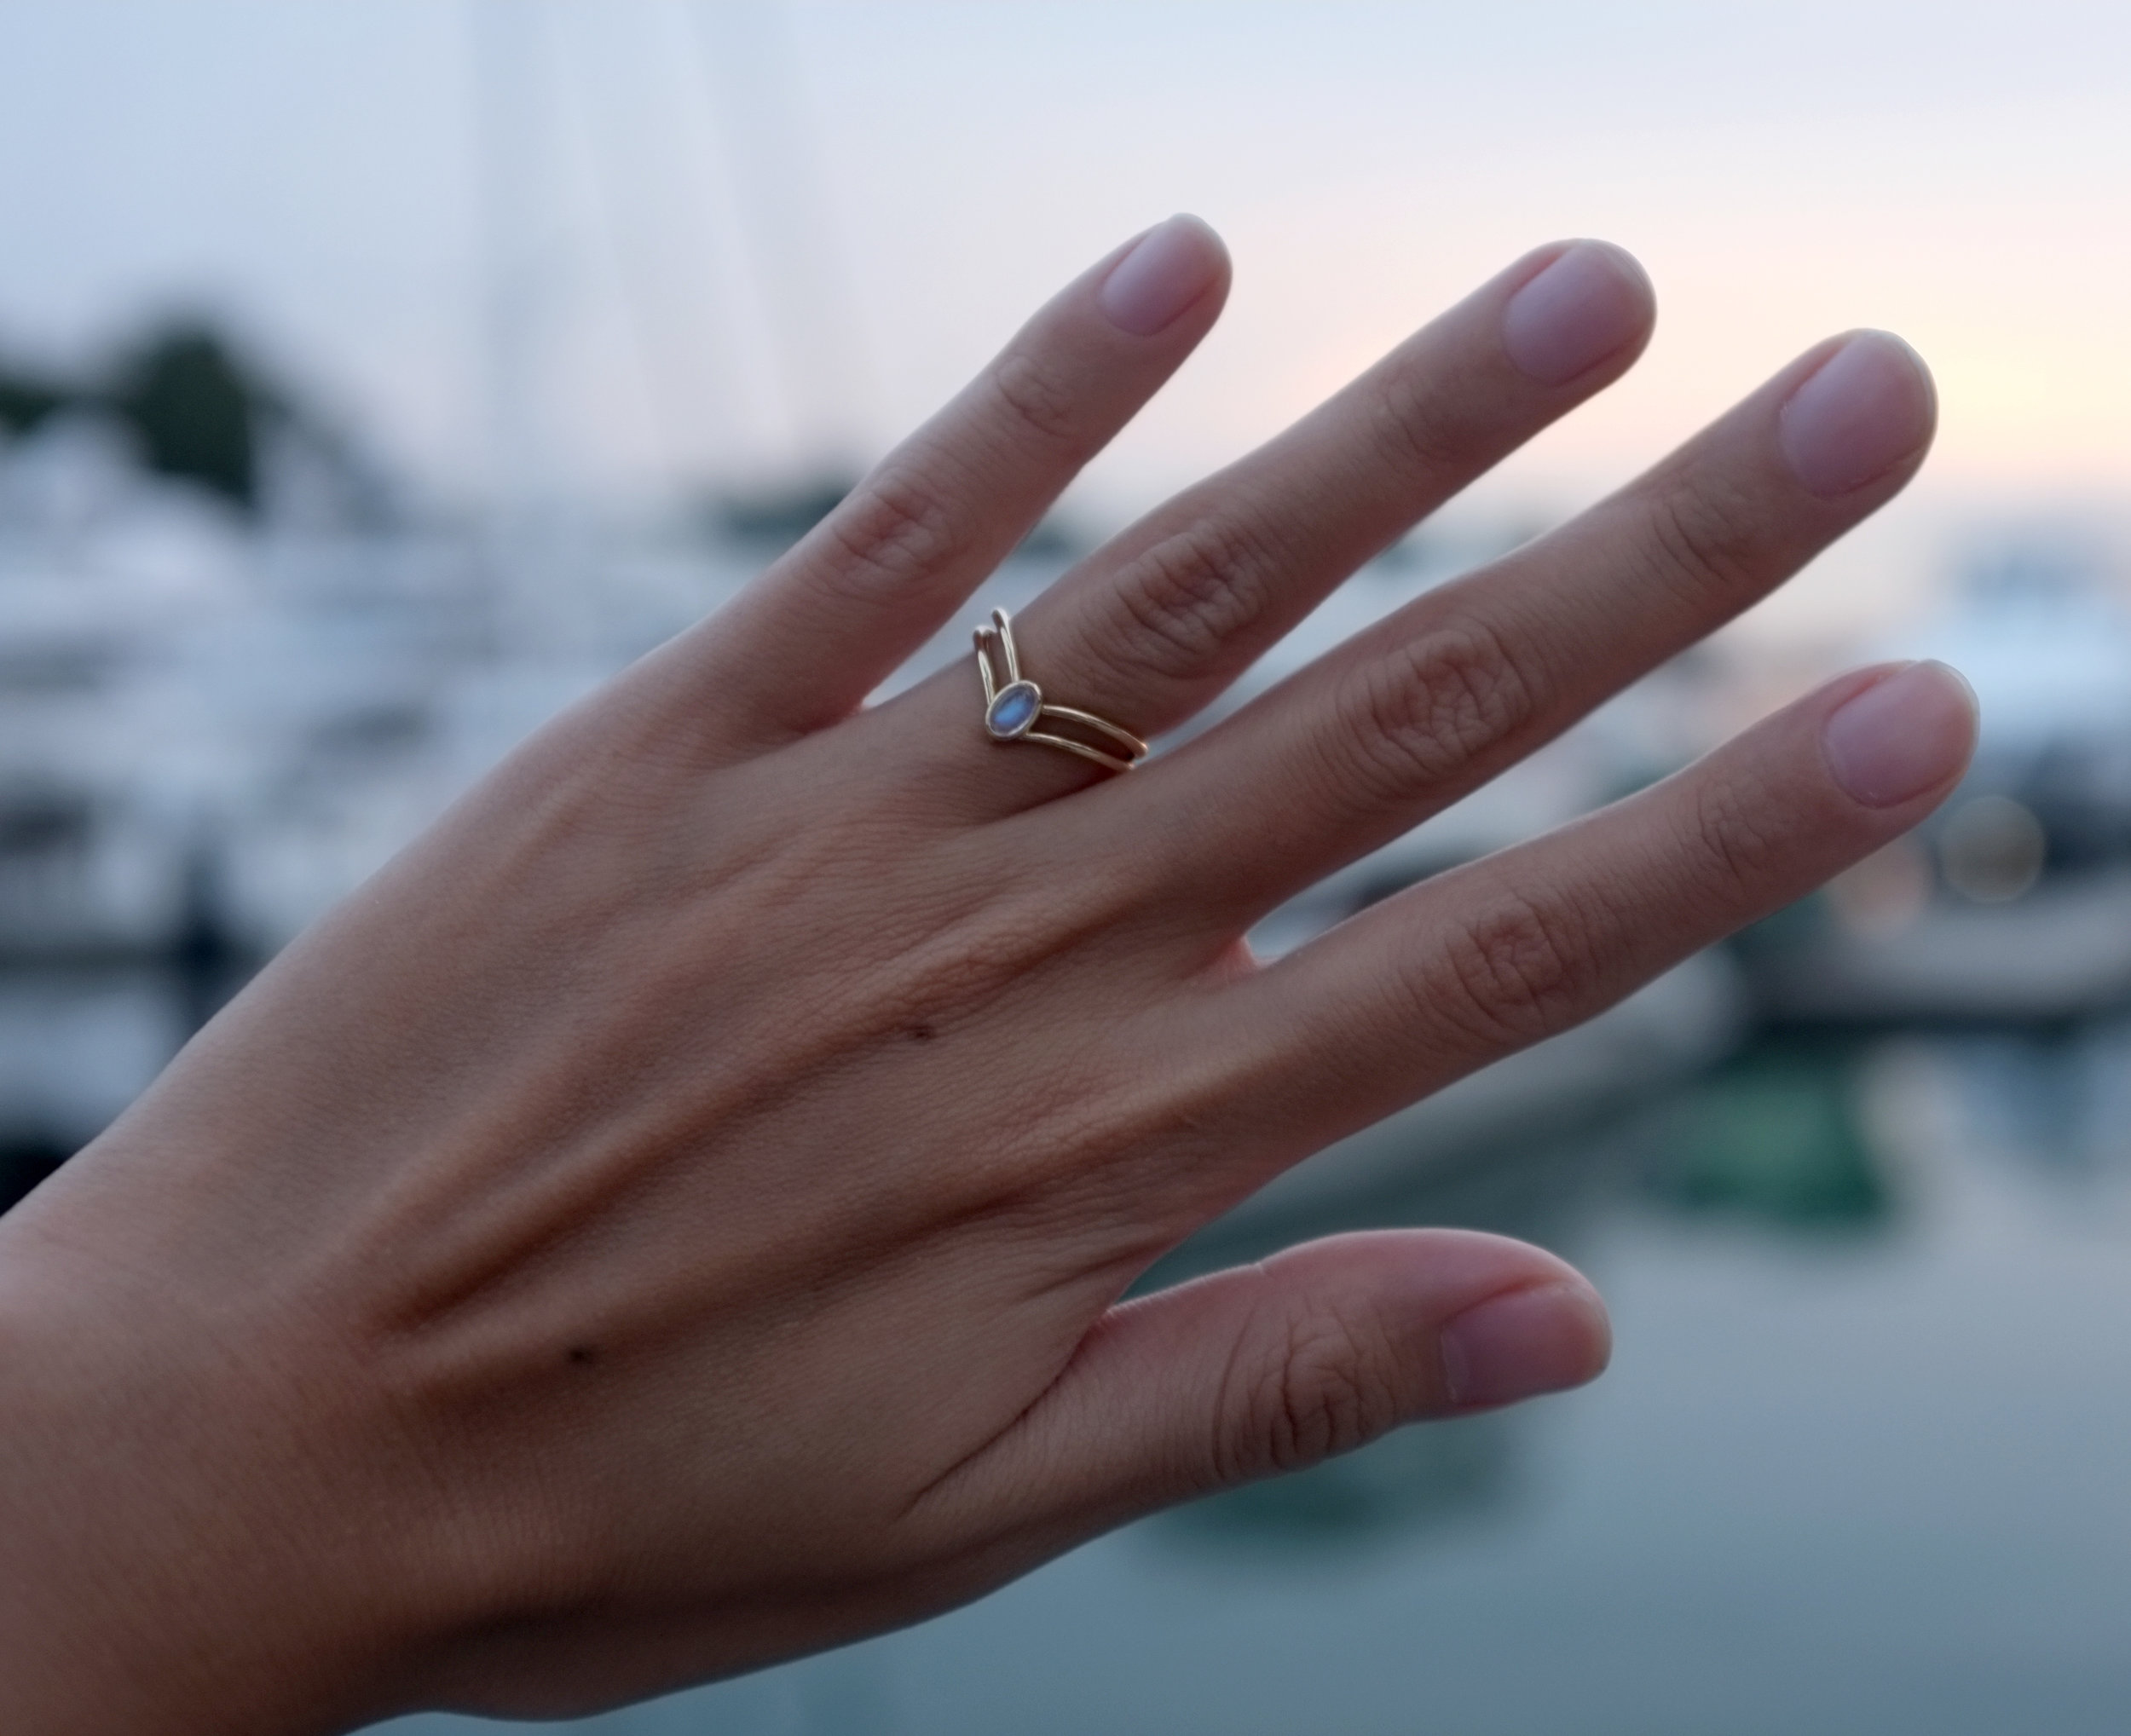 Joni wearing her custom Sailor Saturn engagement ring